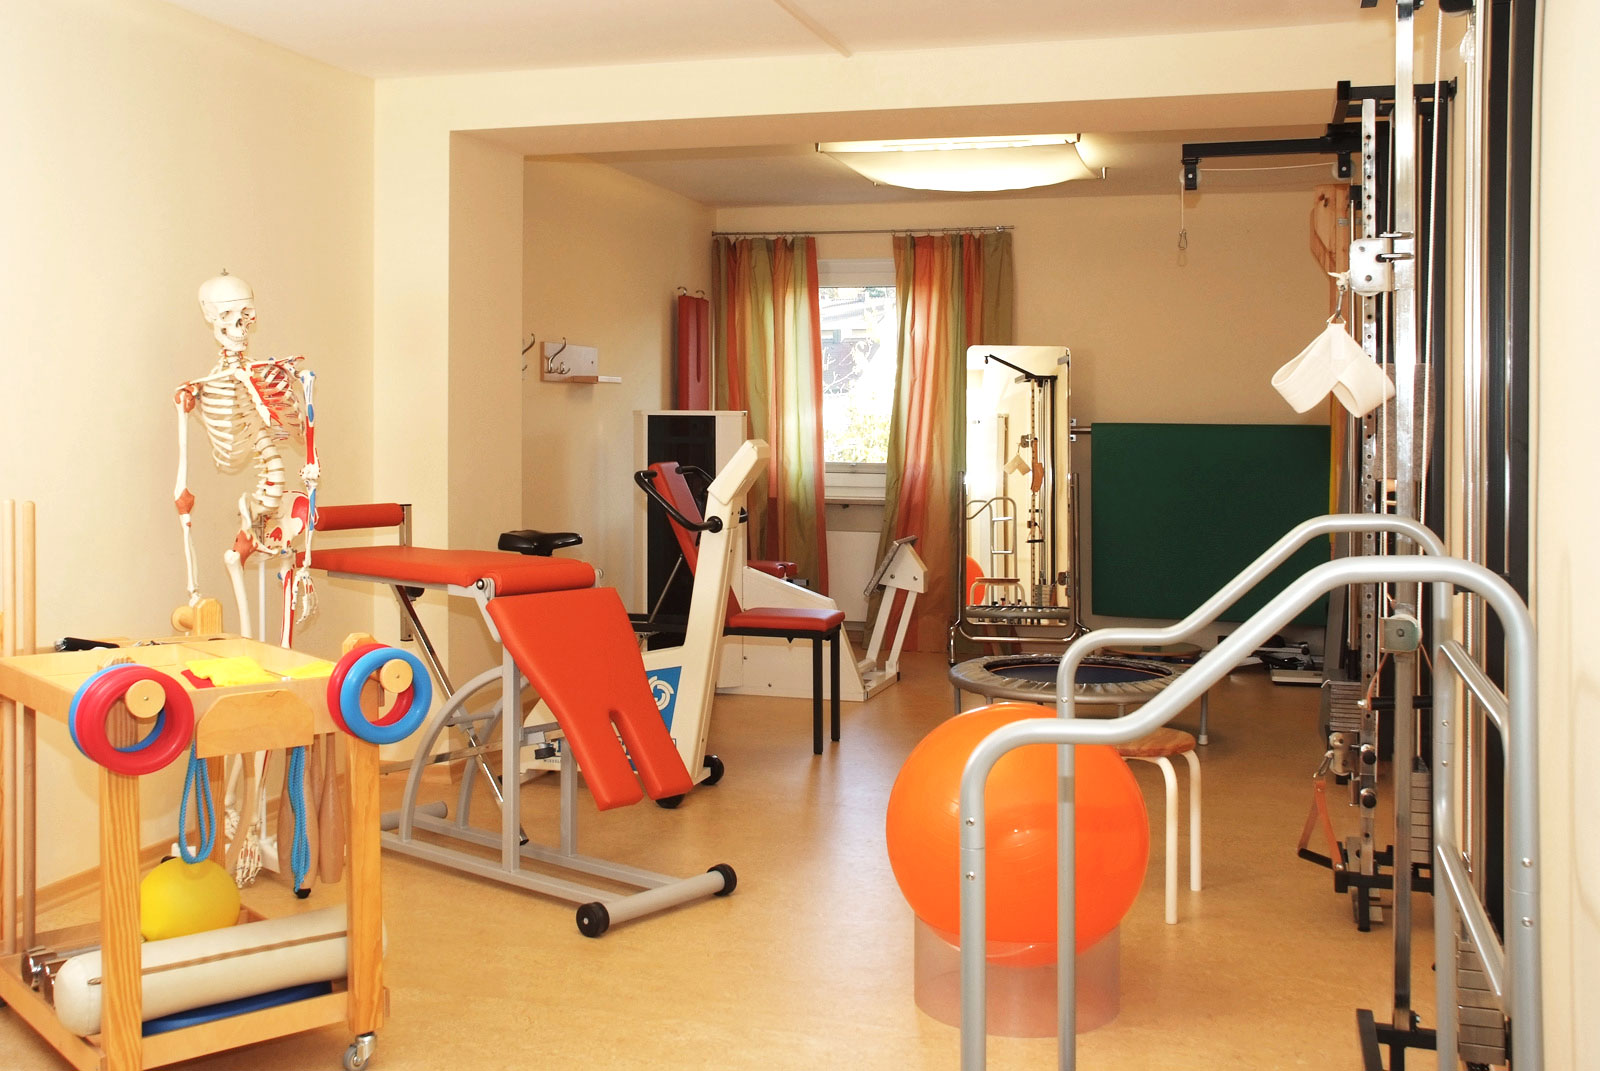 Fitnessraum, Physiotherapie In Deggendorf